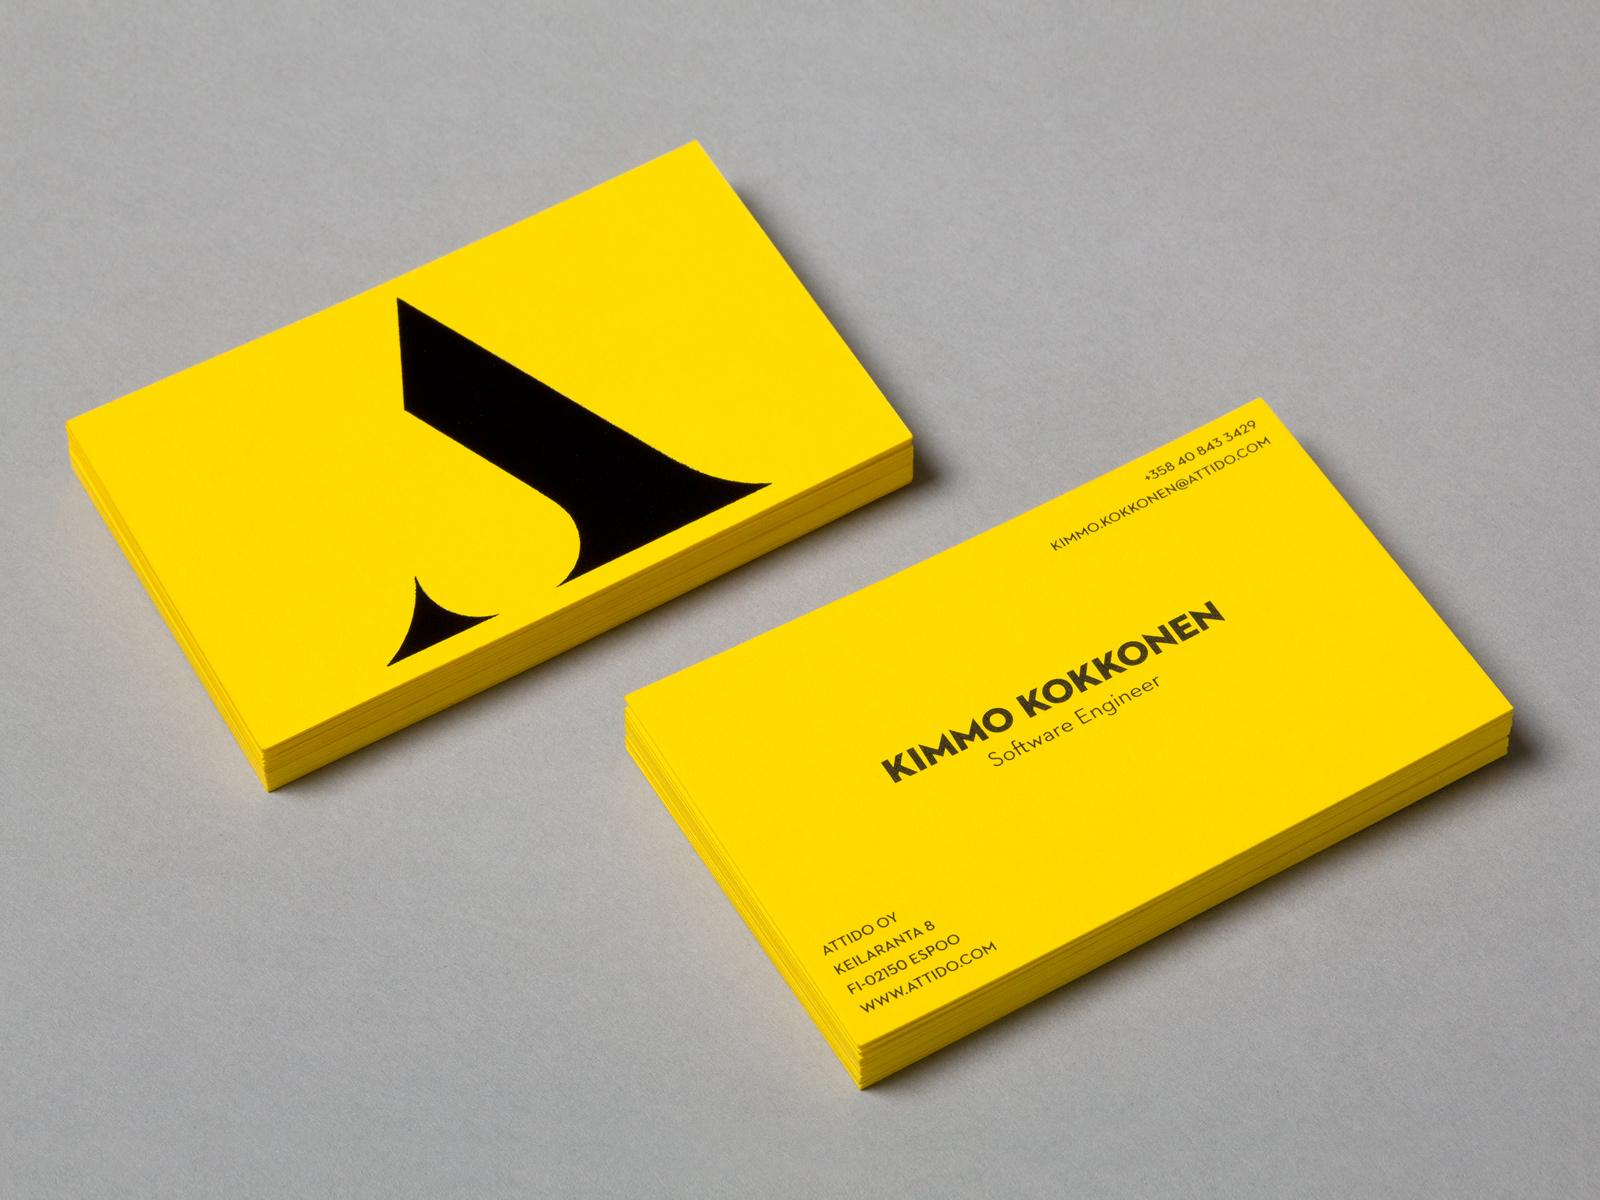 Attido_BusinessCards2.jpg (1600×1200)